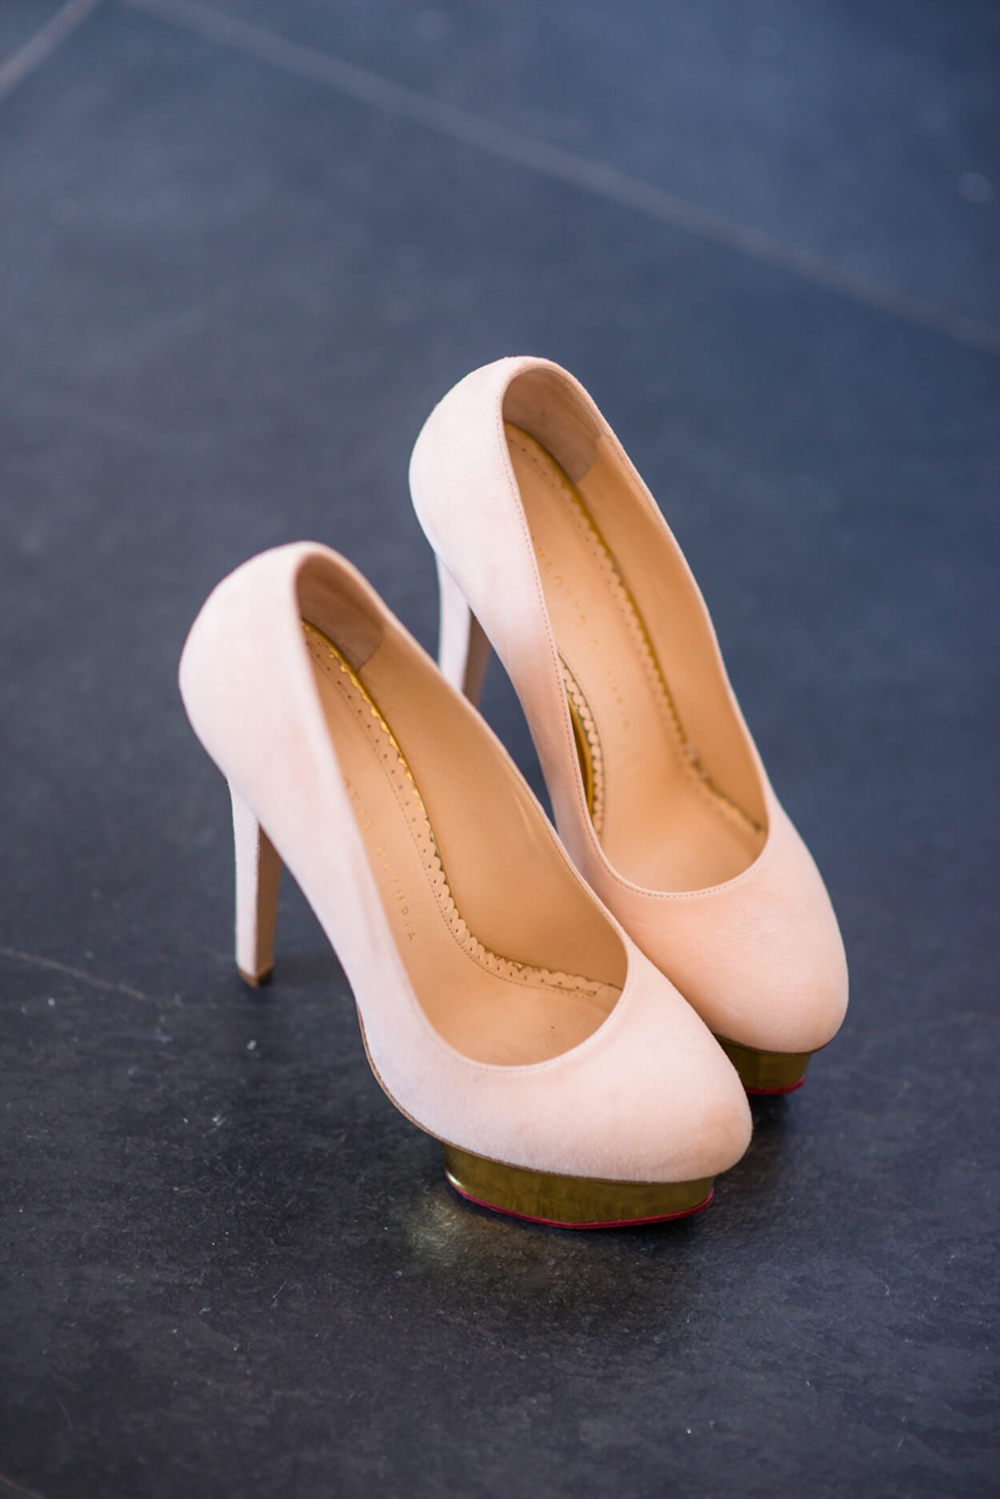 pink suede high heals bridal shoes